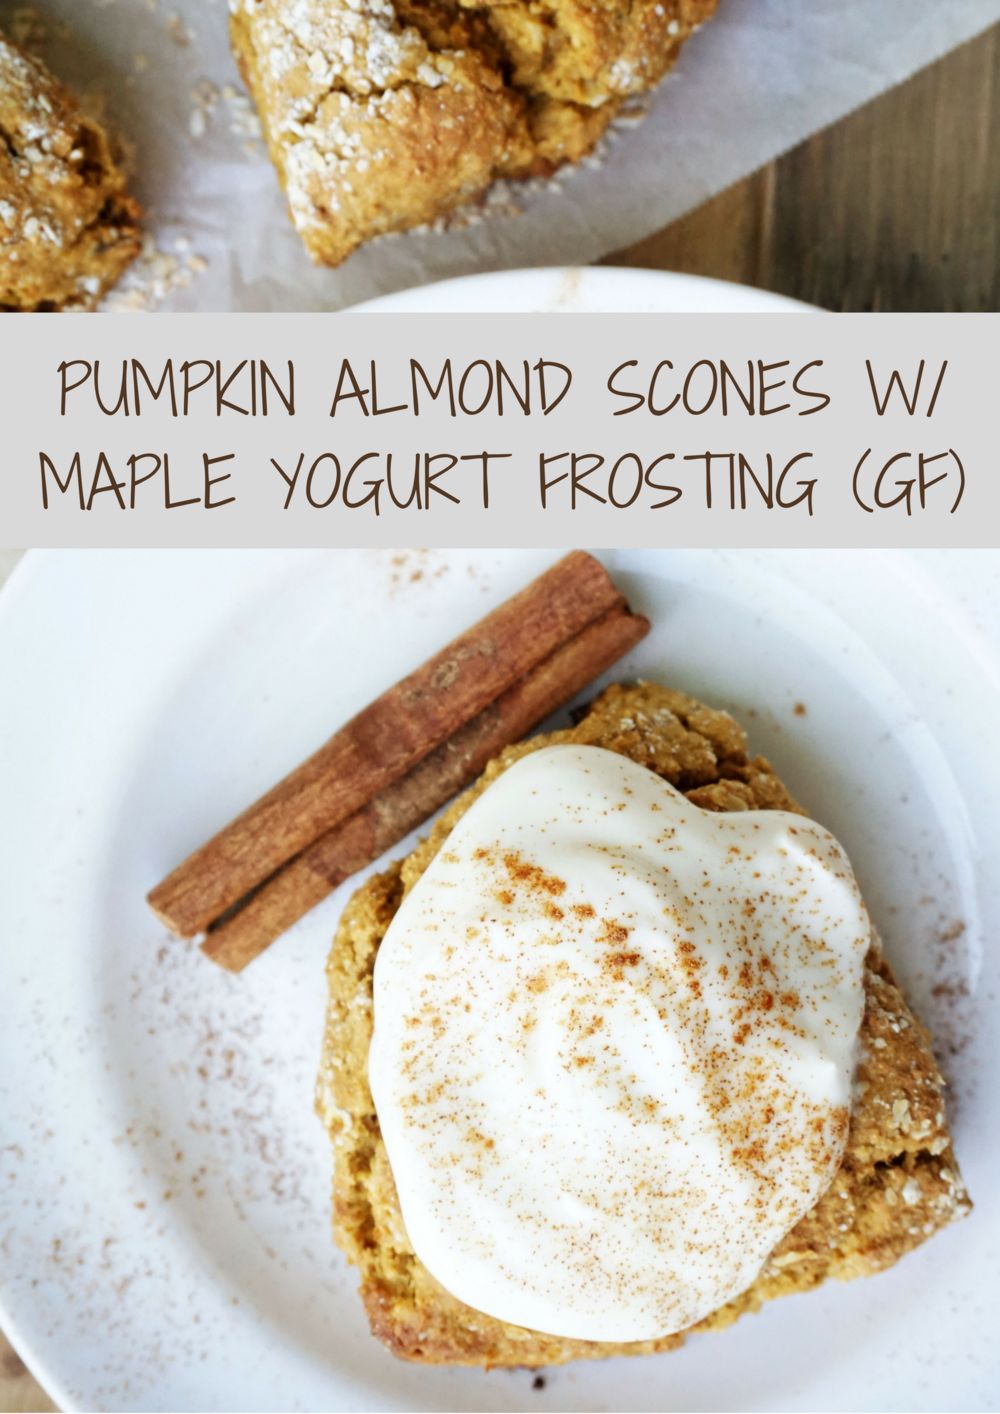 Pumpkin Almond Scones w/ Maple Yogurt Frosting (GF)